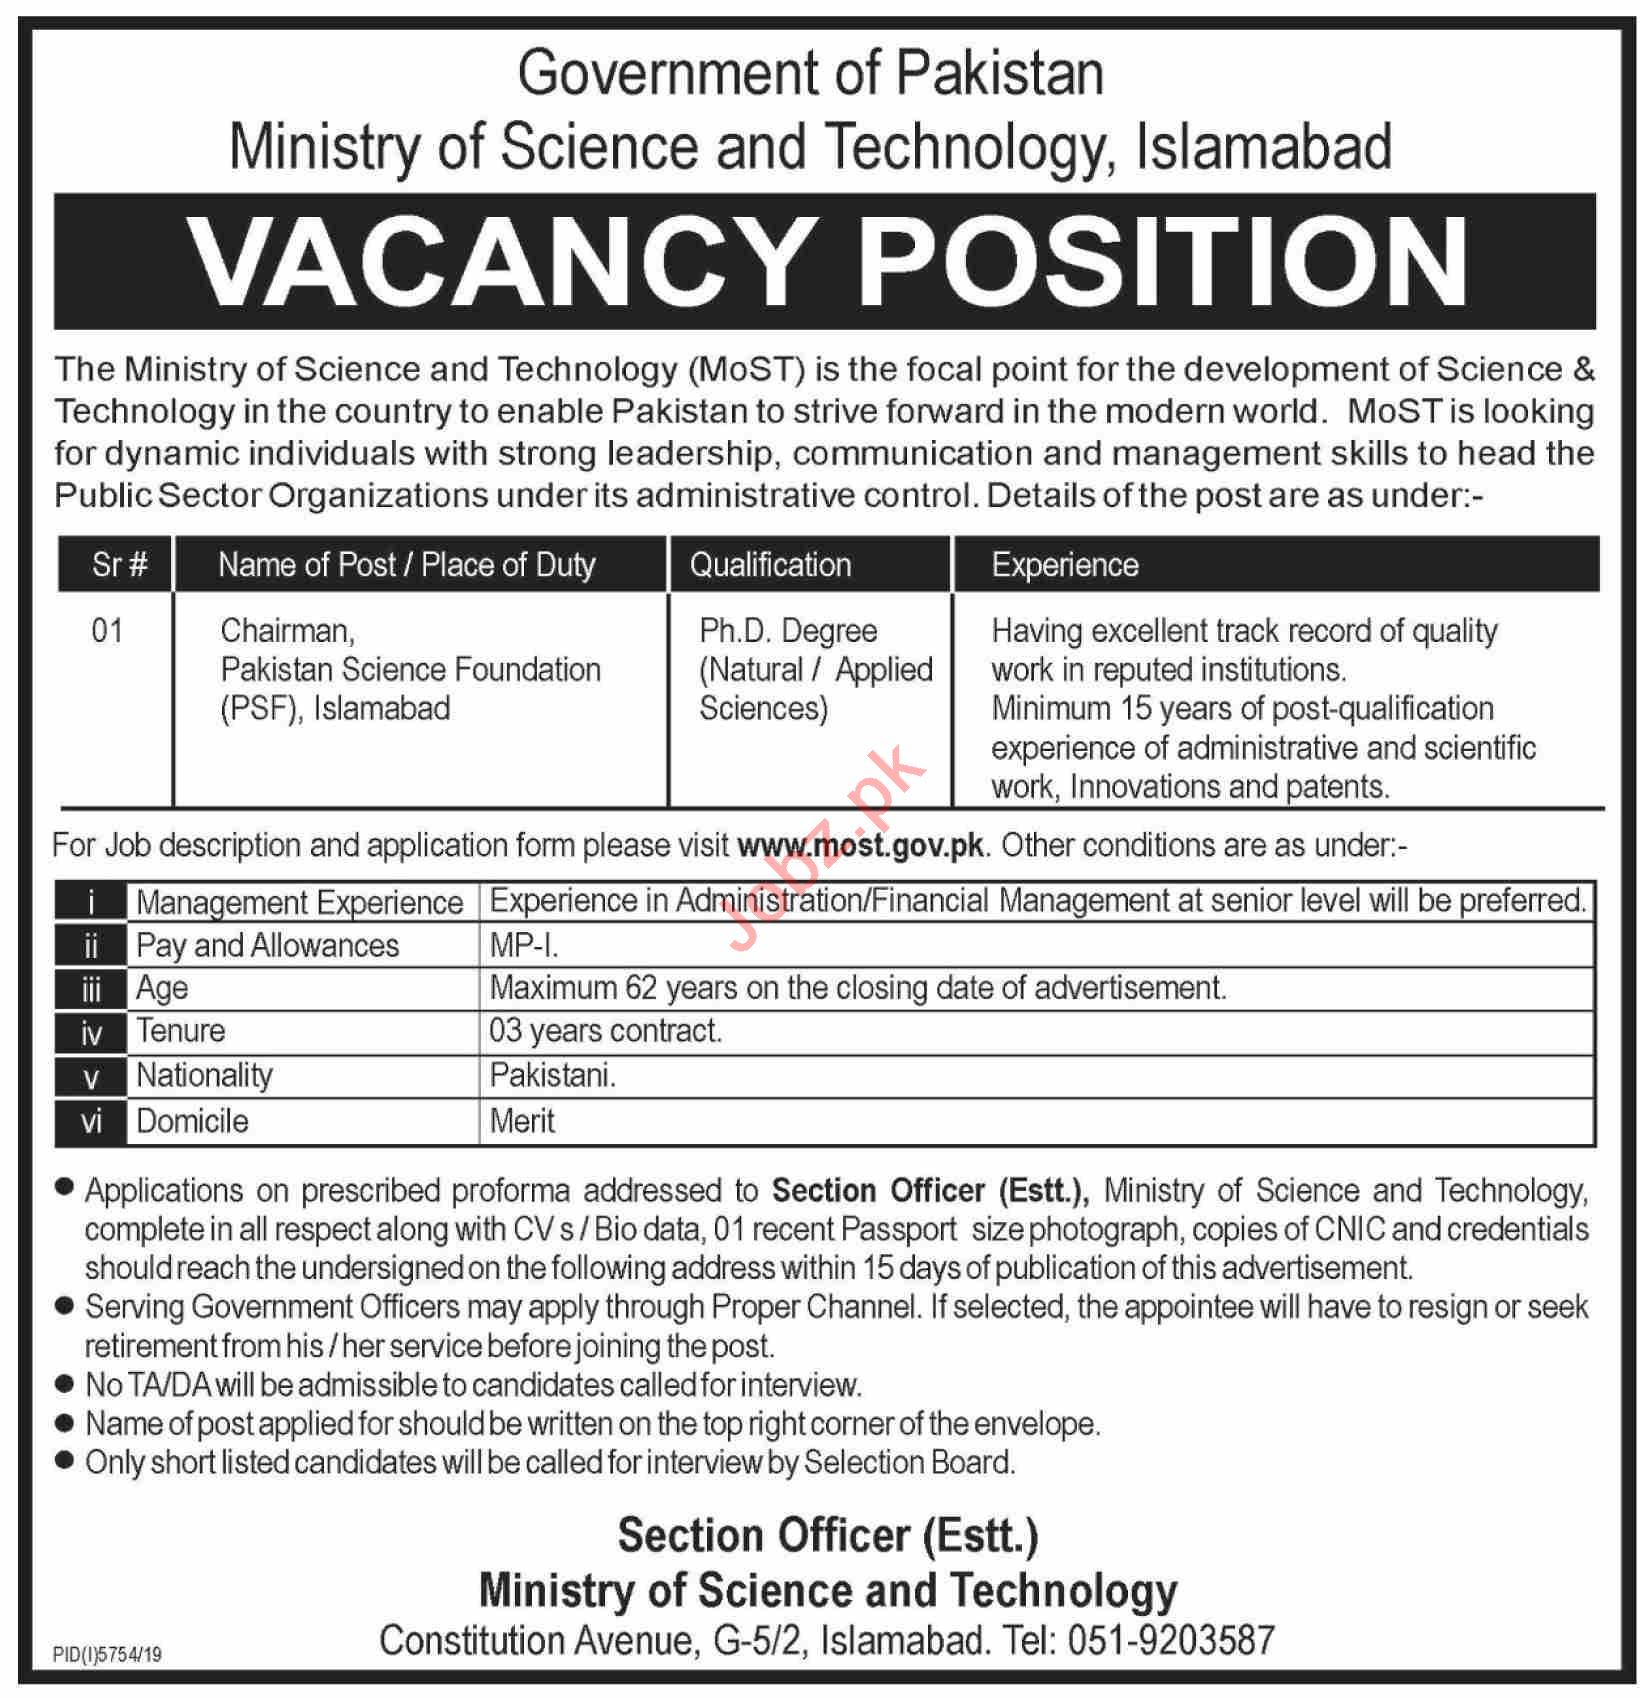 Ministry of Science & Technology PSF Islamabad Jobs 2020